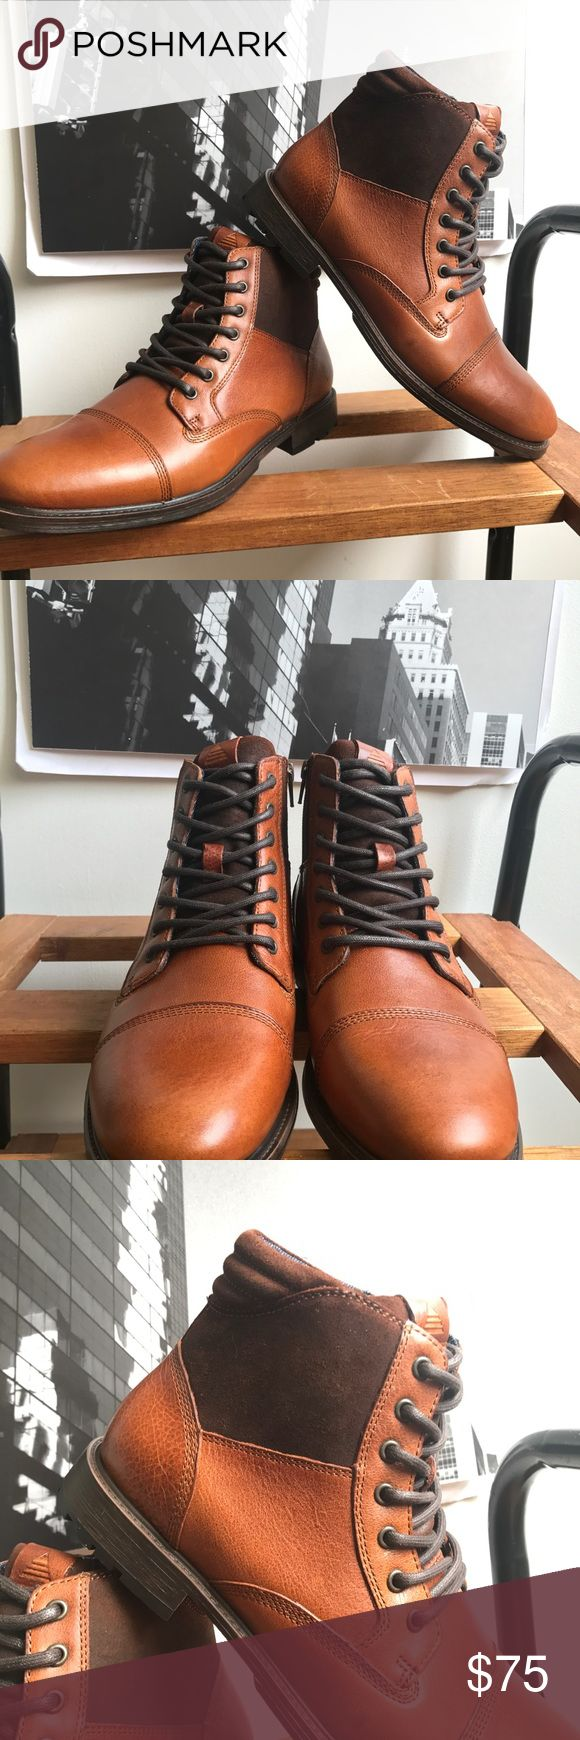 🙌🏾Brand New Aldo Boots #0201AO Brand new Aldo brown with leather accent details lace up ankle boot.Notice the zipper on one side of  ye Boot with the denim accent on the interior. NO TRADES. NO LOWBALL OFFERS, Thank you! #boot #aldo #men #mensstyle #style #streetwear #boot #size9 #size42 #fallfashion #winterfashion #winter #fall #brownboot #brown #brandnew #aldoboot Aldo Shoes Boots